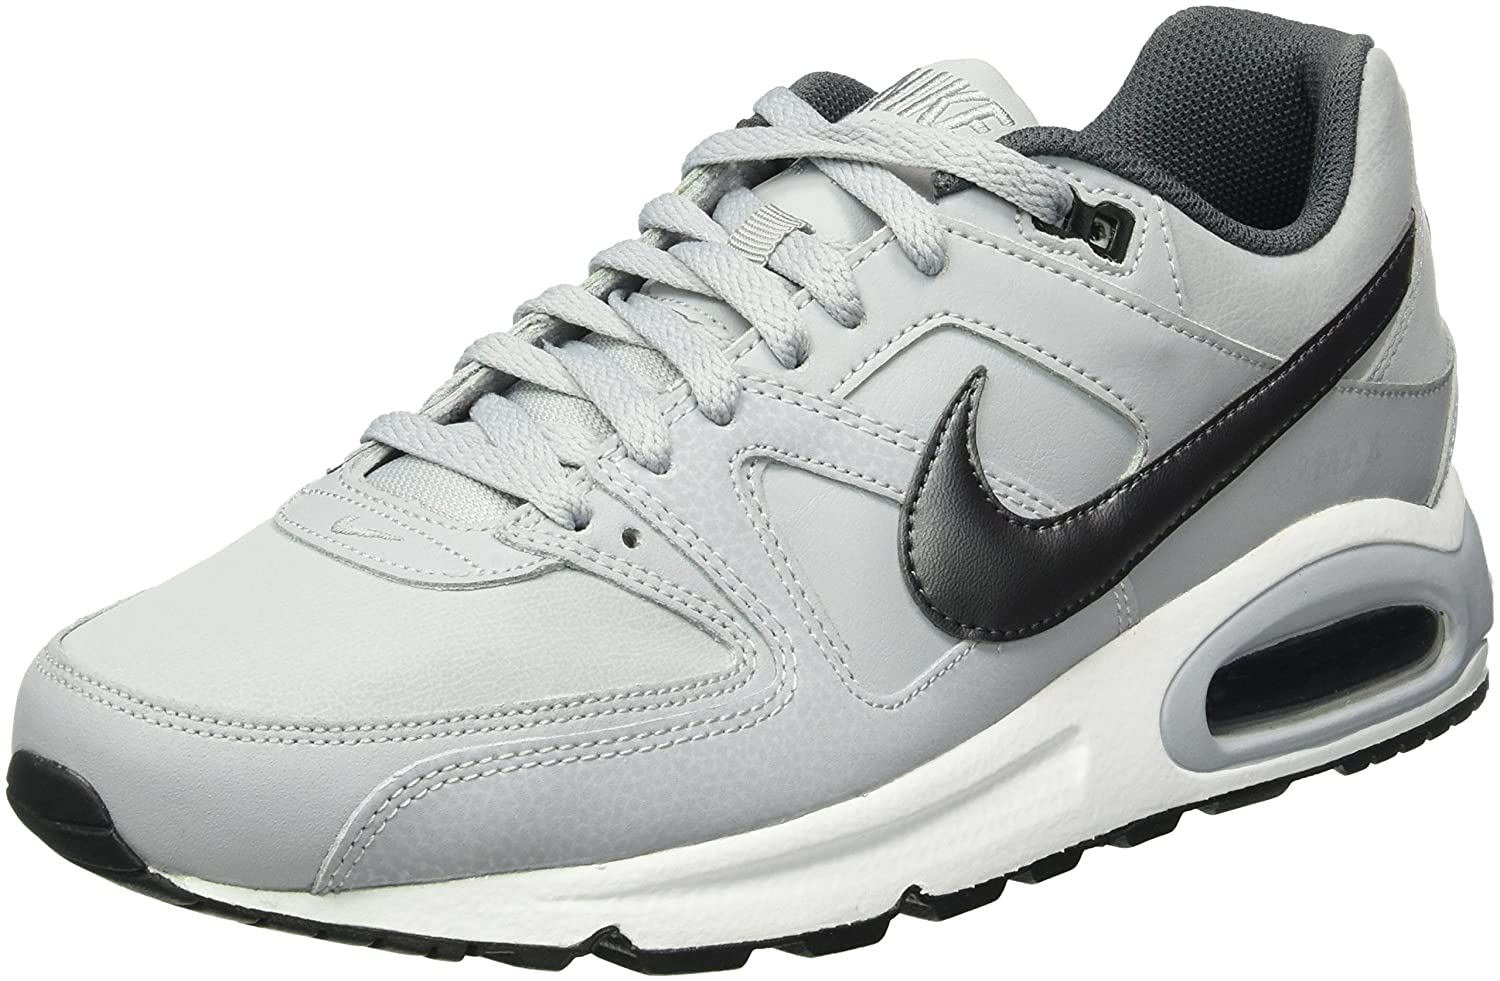 Nike Air MAX Command Leather - Zapatillas de Running, Hombre 45 EU|Gris (Wolf Grey/Metallic Dark Grey-black-white 012)